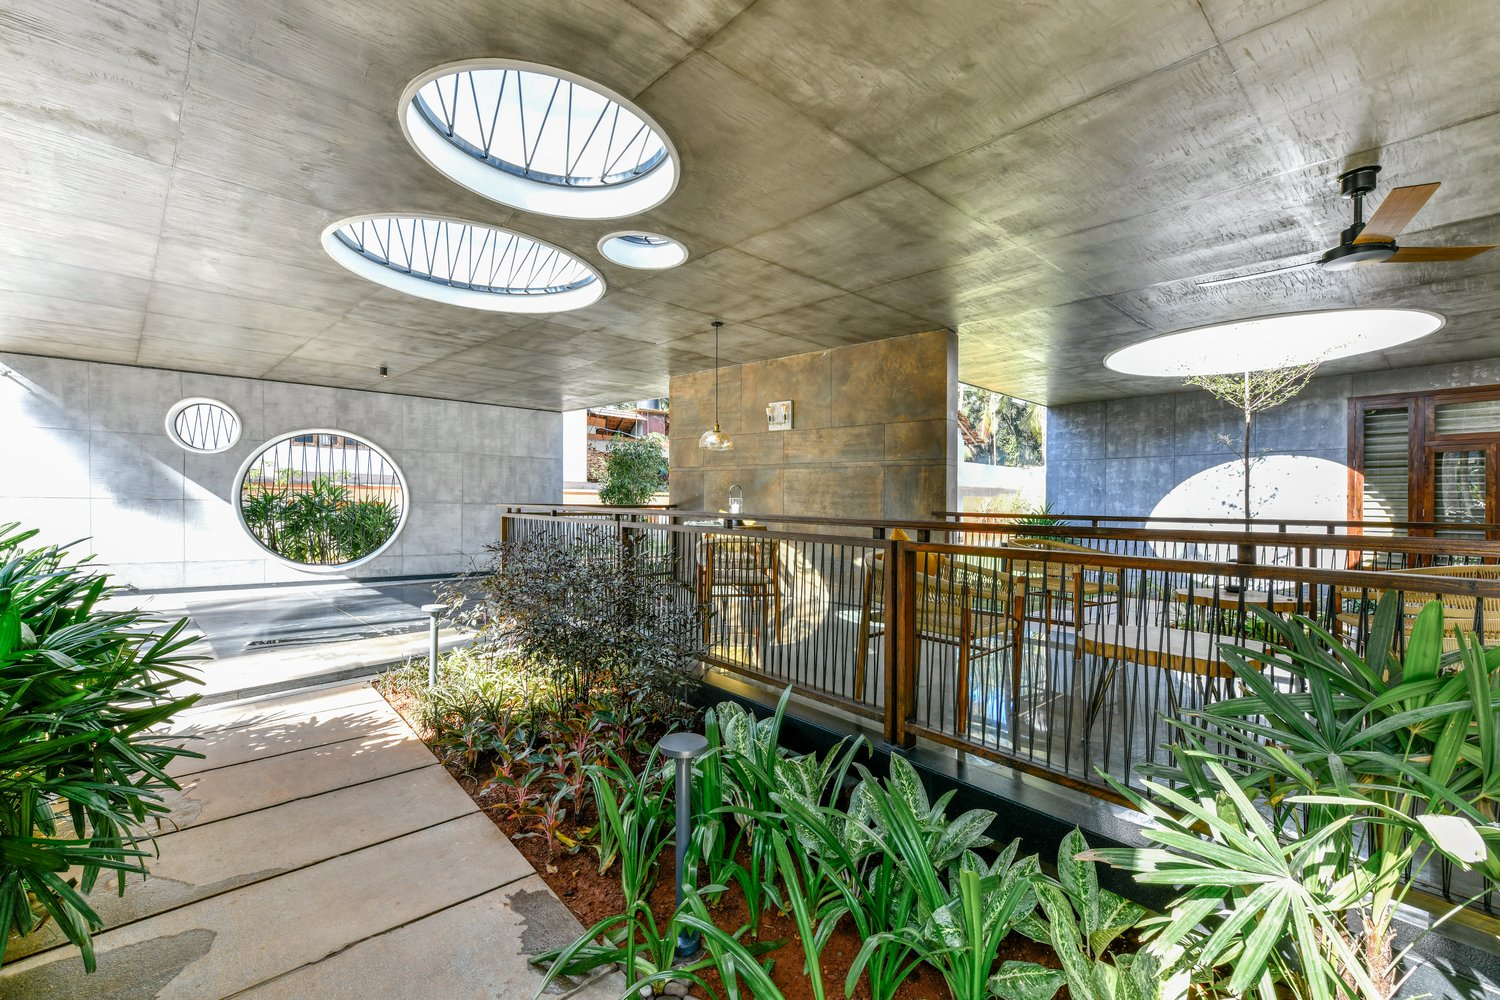 Circular Skylights Let the Landscape Grow Through This Concrete Home in India